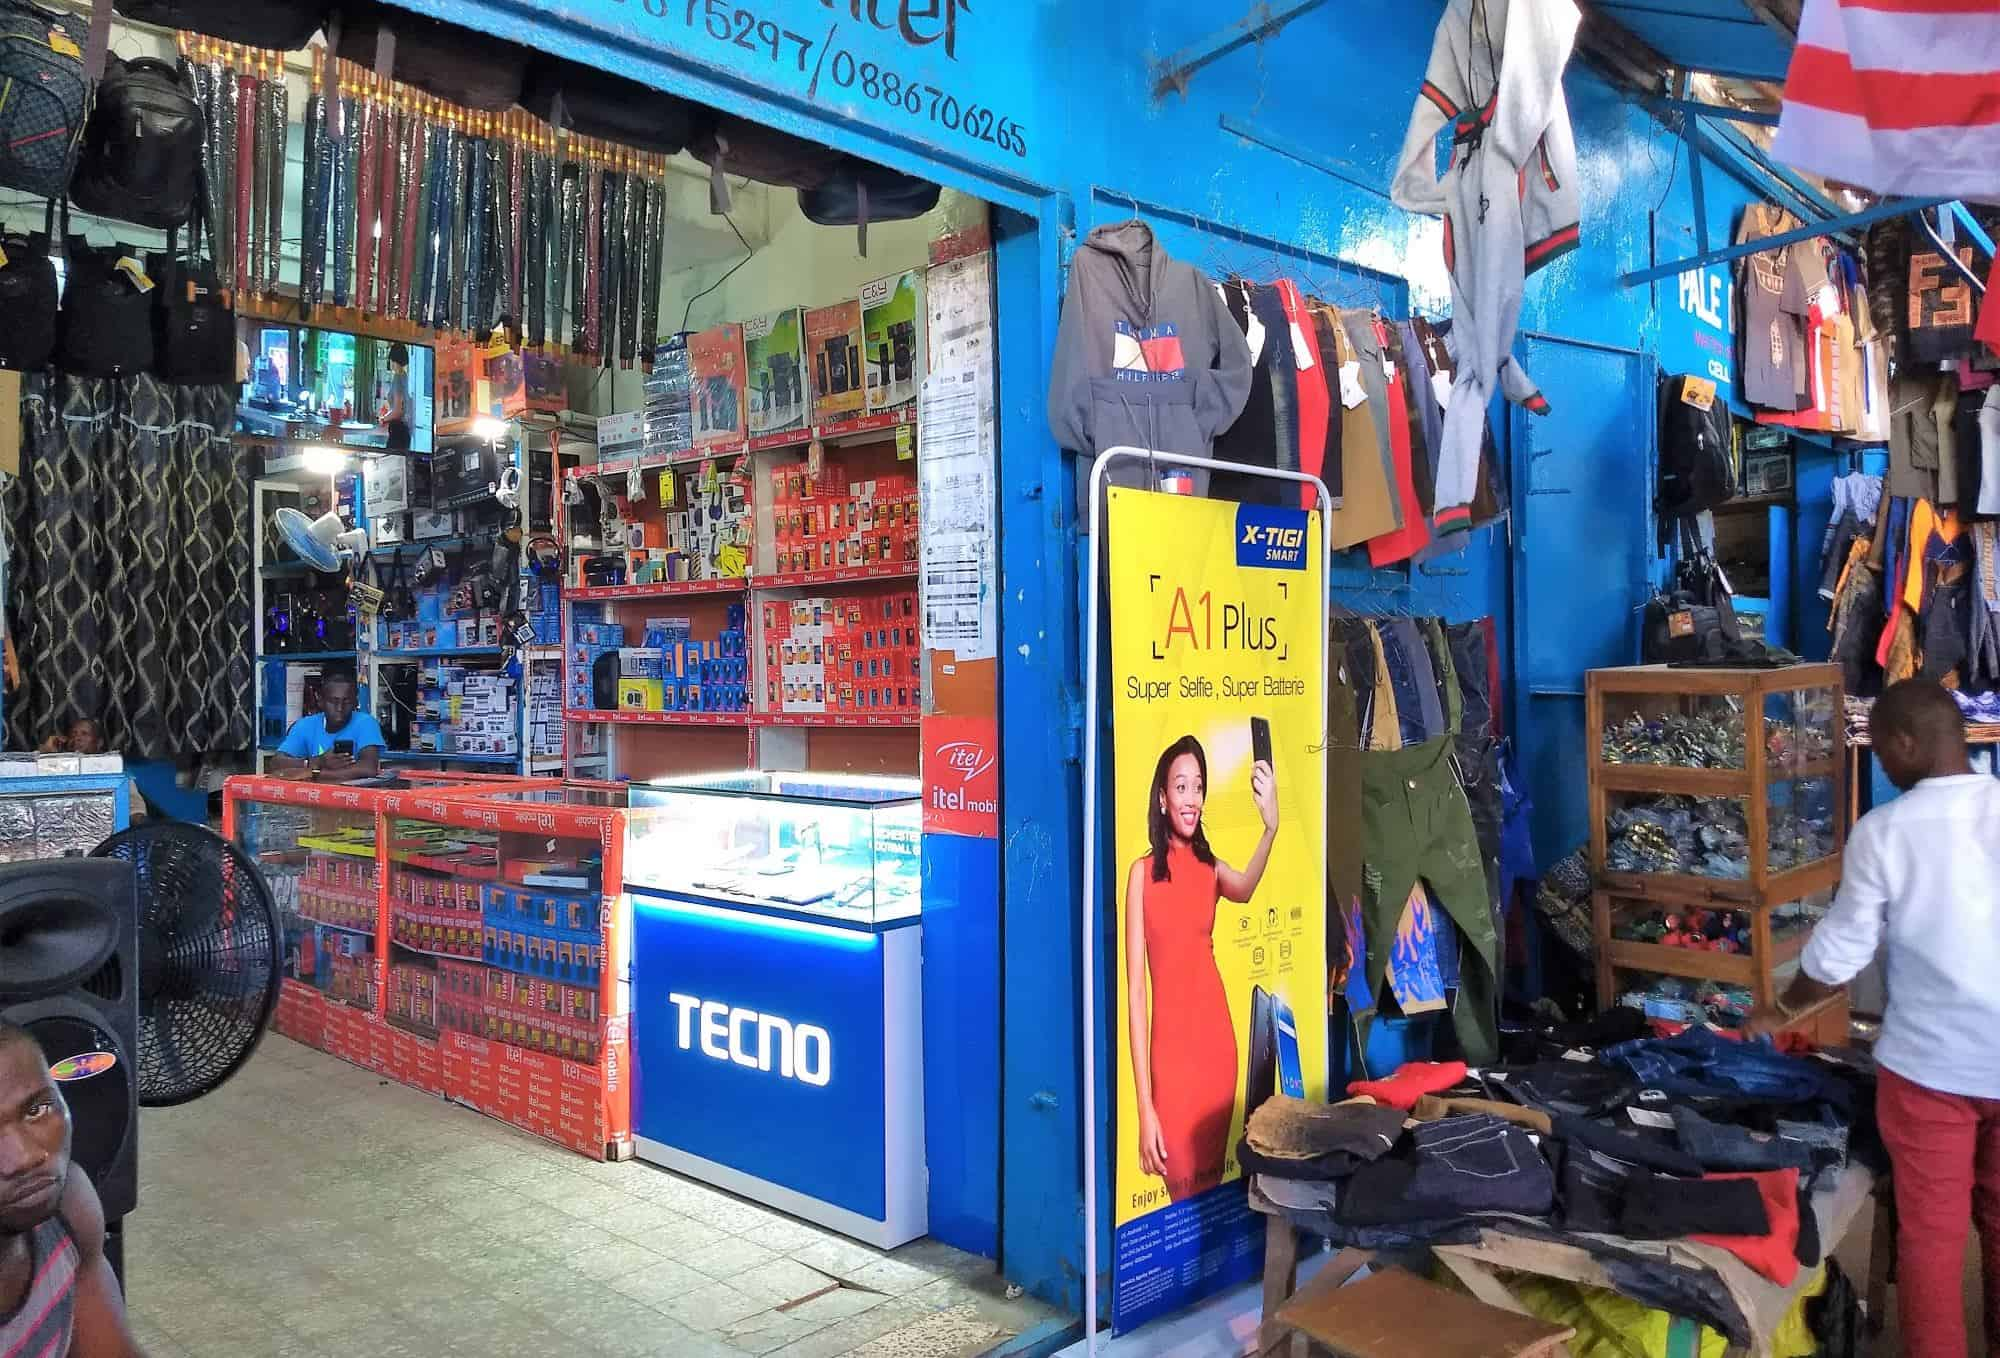 Where to buy technology in Monrovia